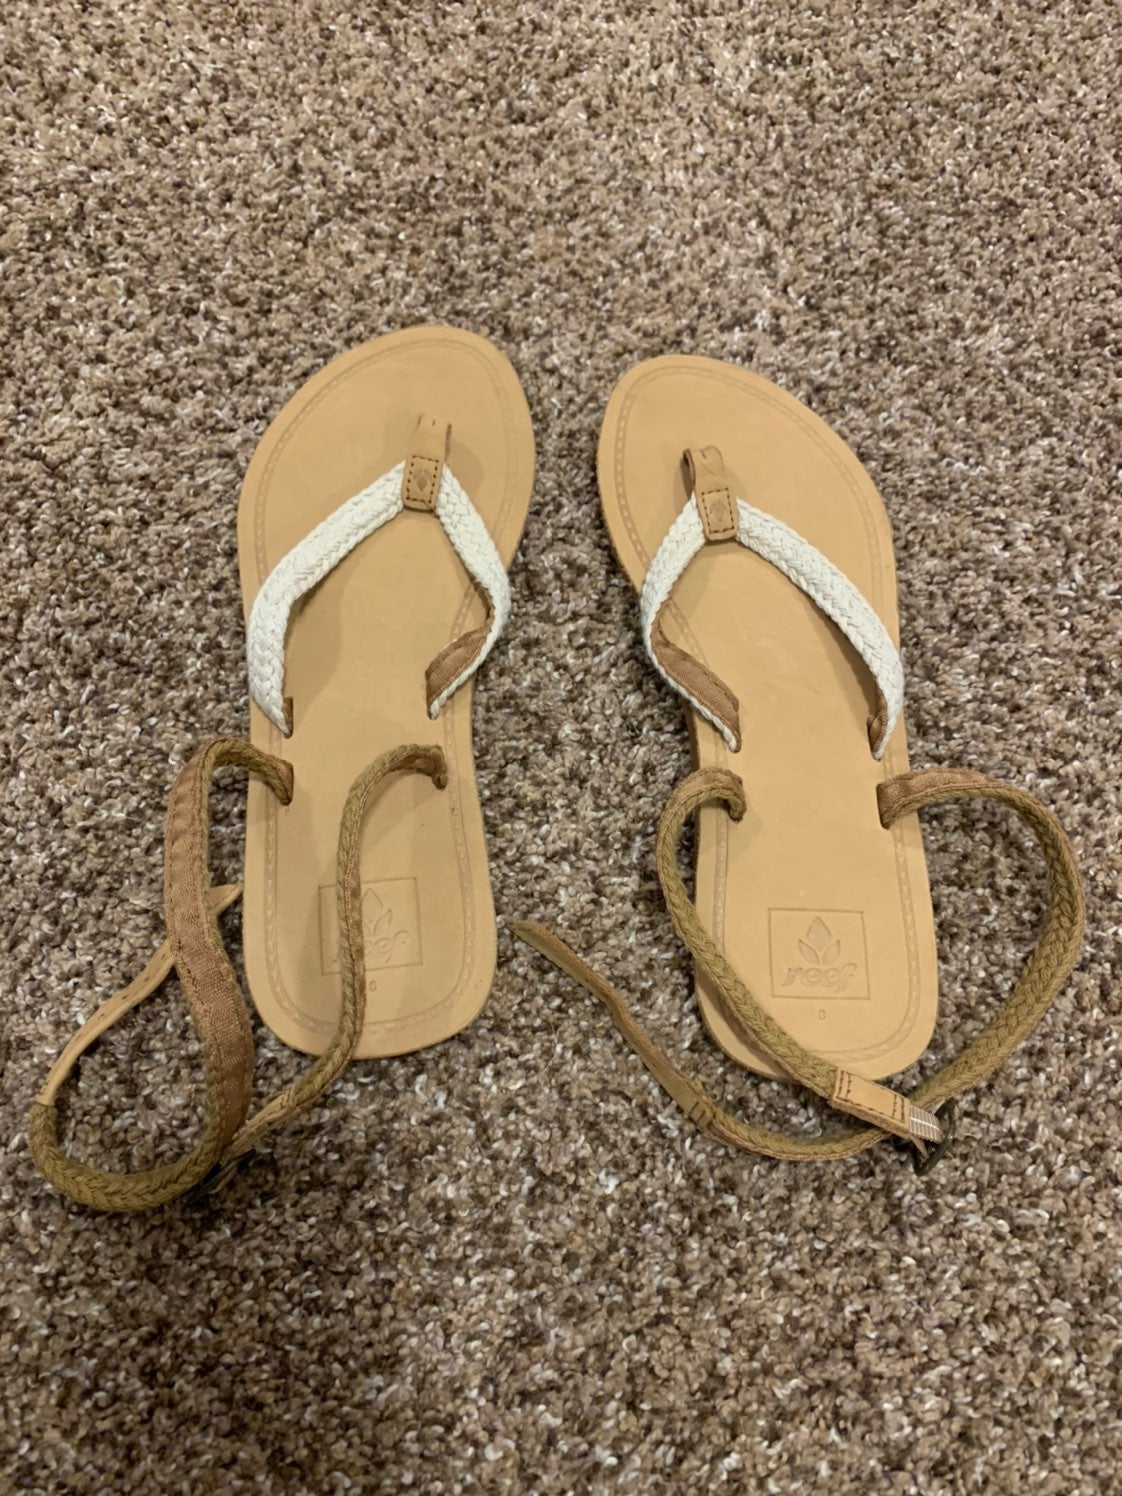 NEW REEF WRAP SANDALS SIZE 8